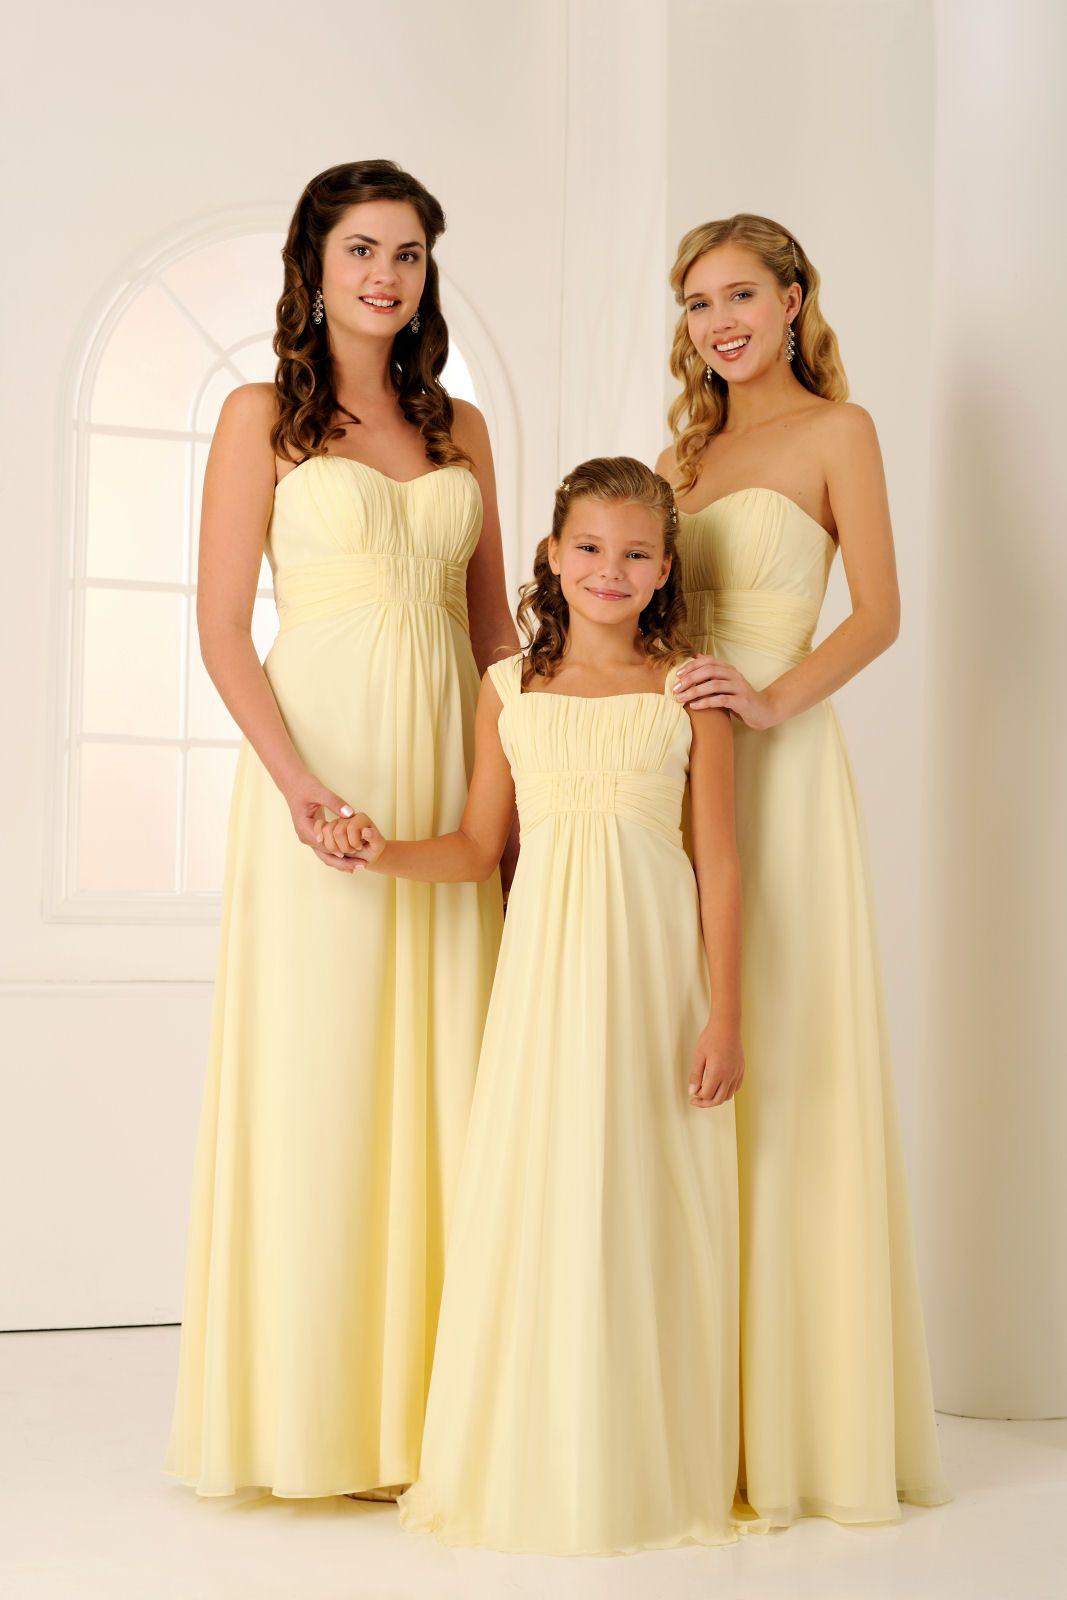 Adult bridesmaids vrb71263 and childs style vrf81255 by veromia dress your favourite girls in the new veromia bridesmaids collection ombrellifo Images